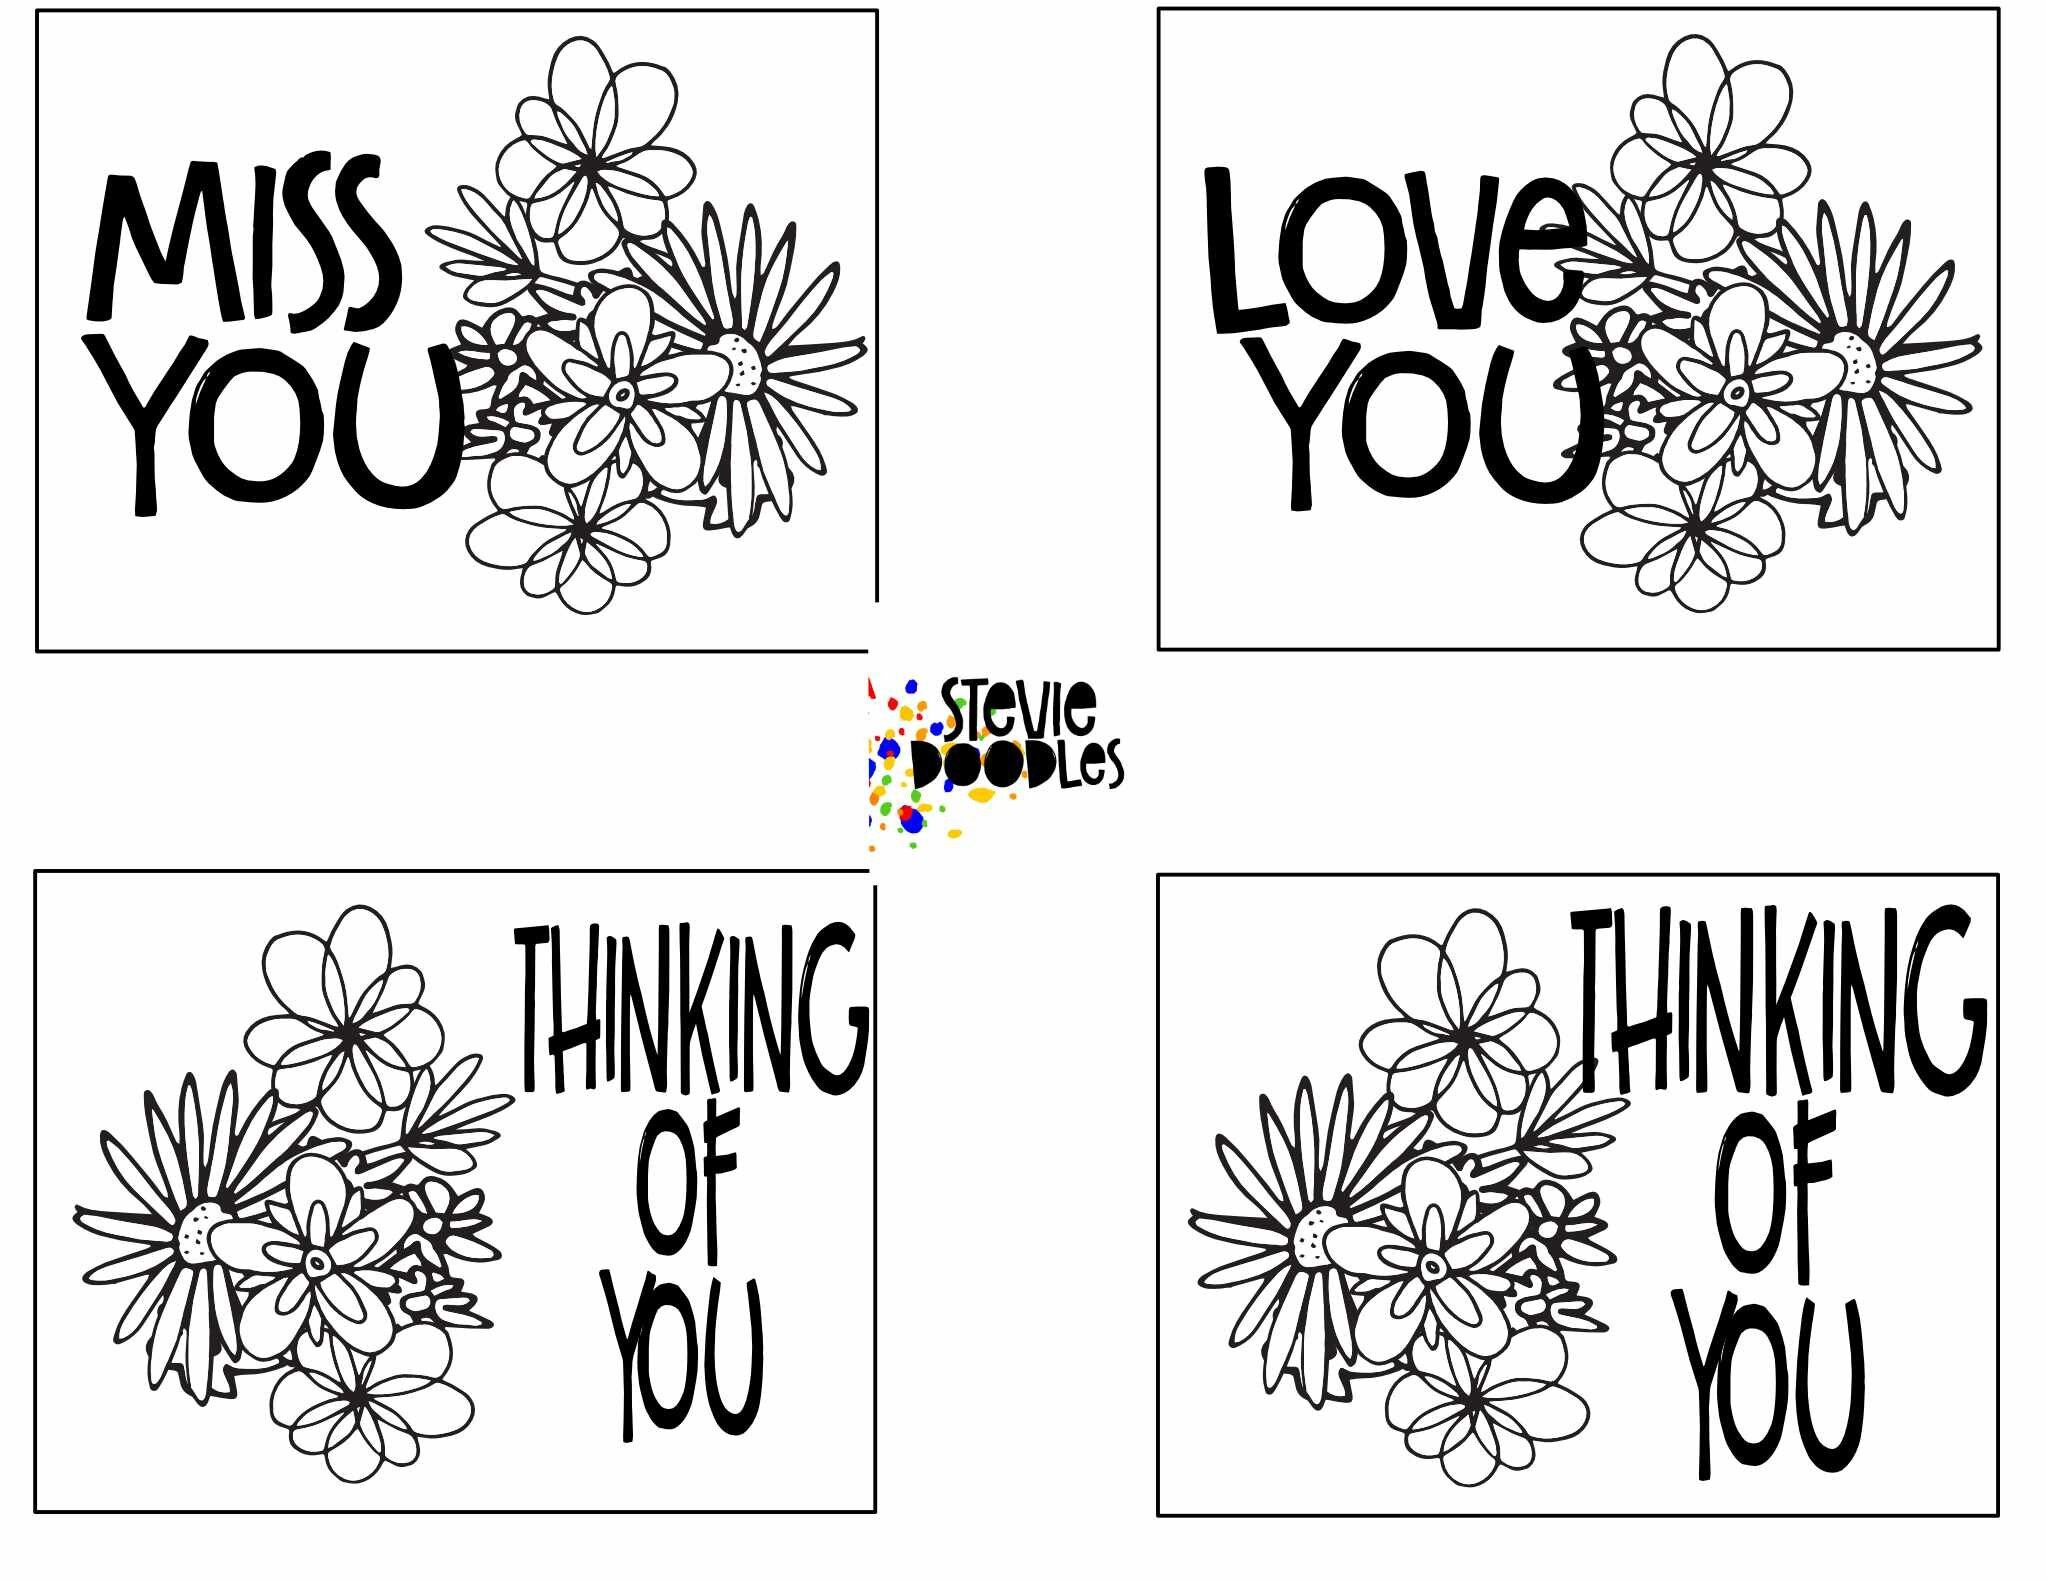 Thinking Of You 7 Pages Of Cards To Print And Color Stevie Doodles Free Printable Greeting Cards Coloring For Kids Free Printable Coloring Cards